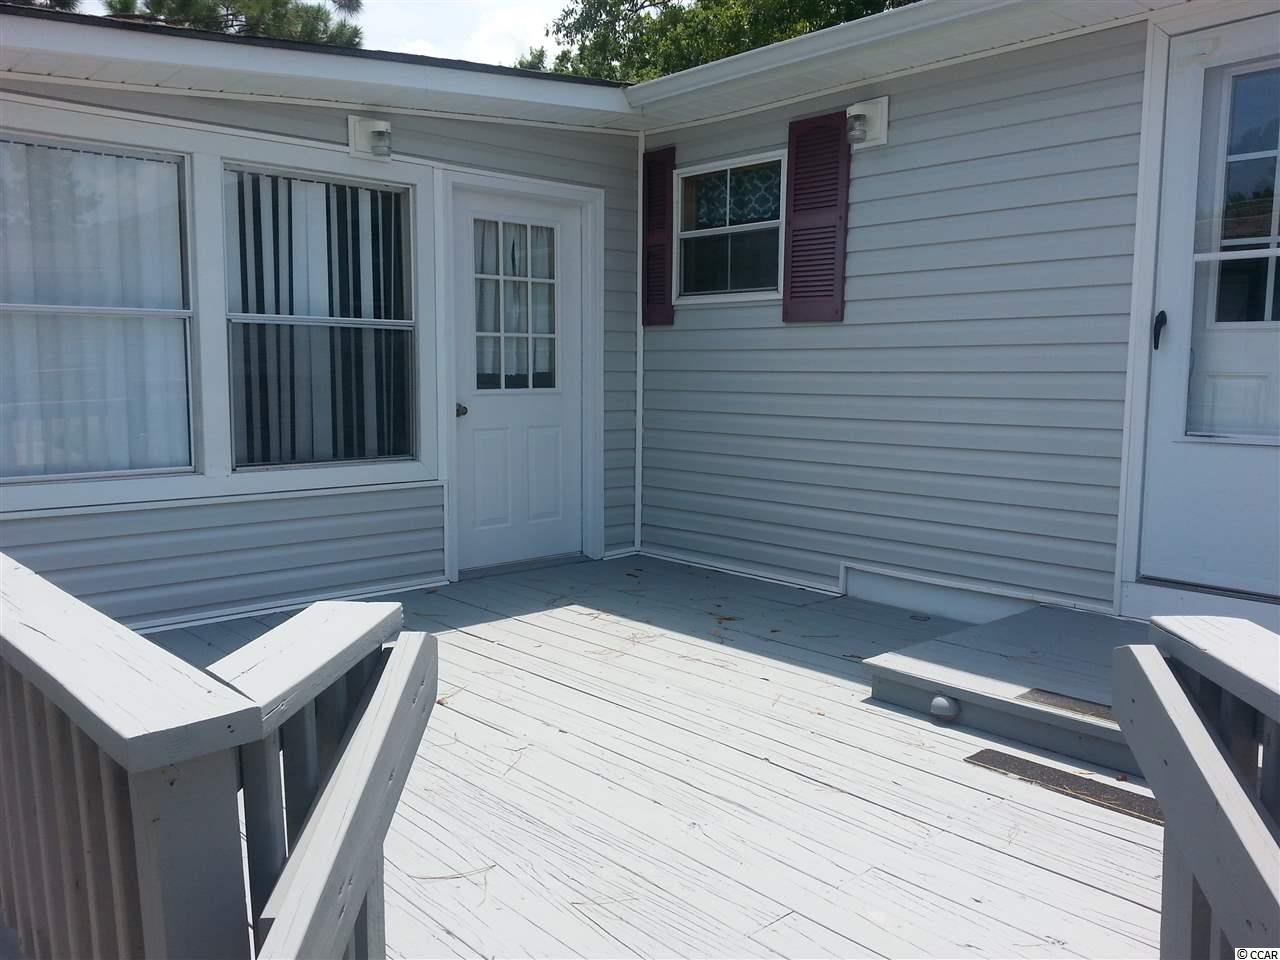 Oceanside Village house for sale in Surfside Beach, SC